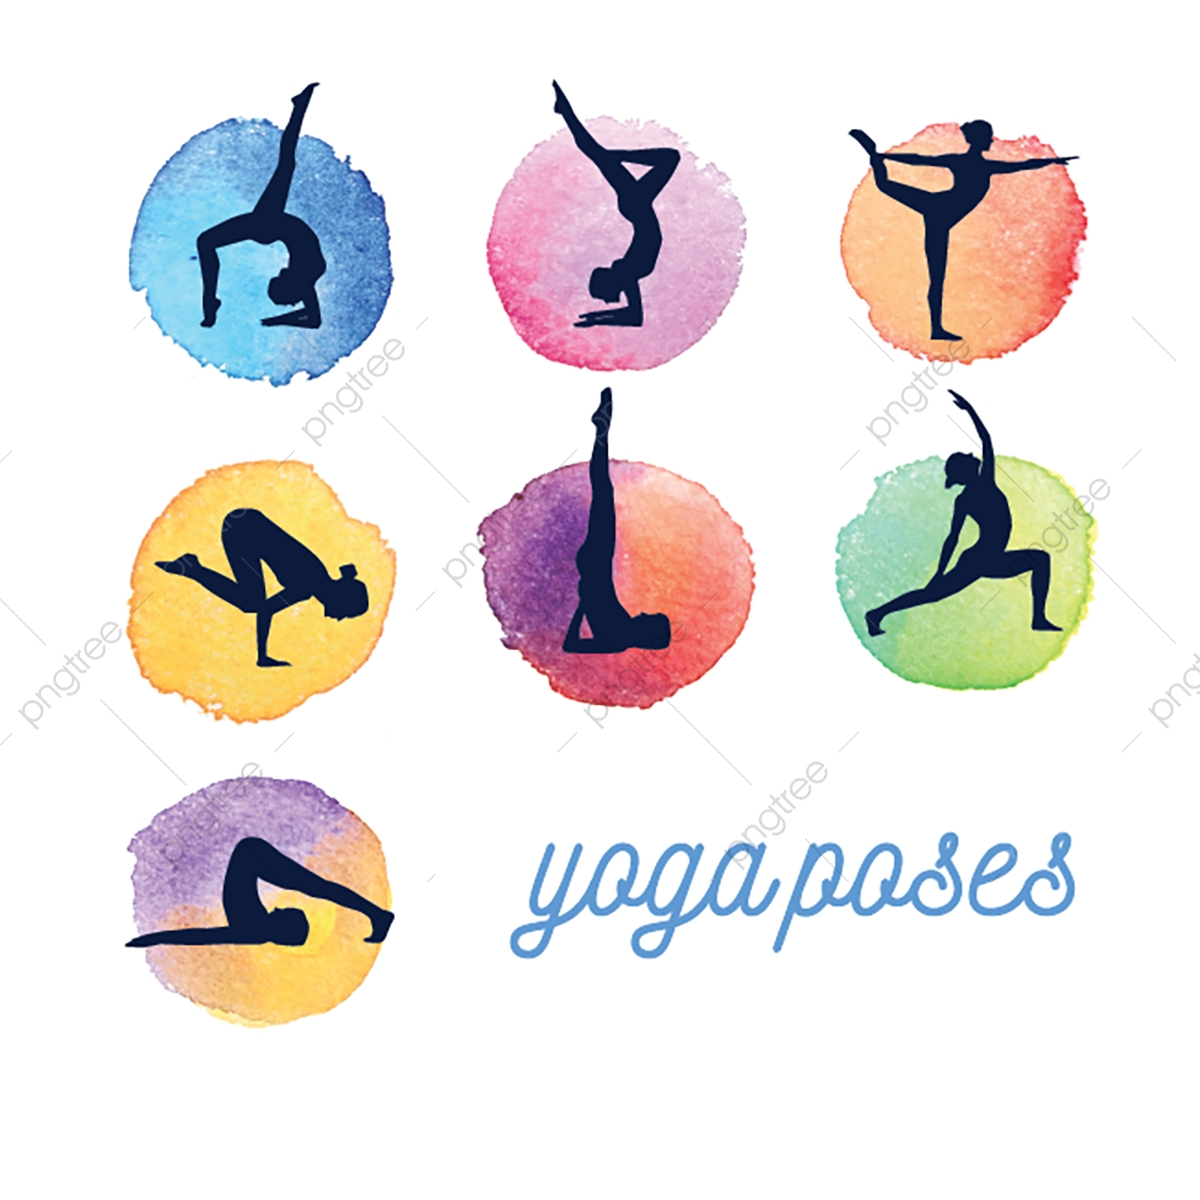 Yoga Poses Yoga Pose Yoga Vector Png And Vector With Transparent Background For Free Download